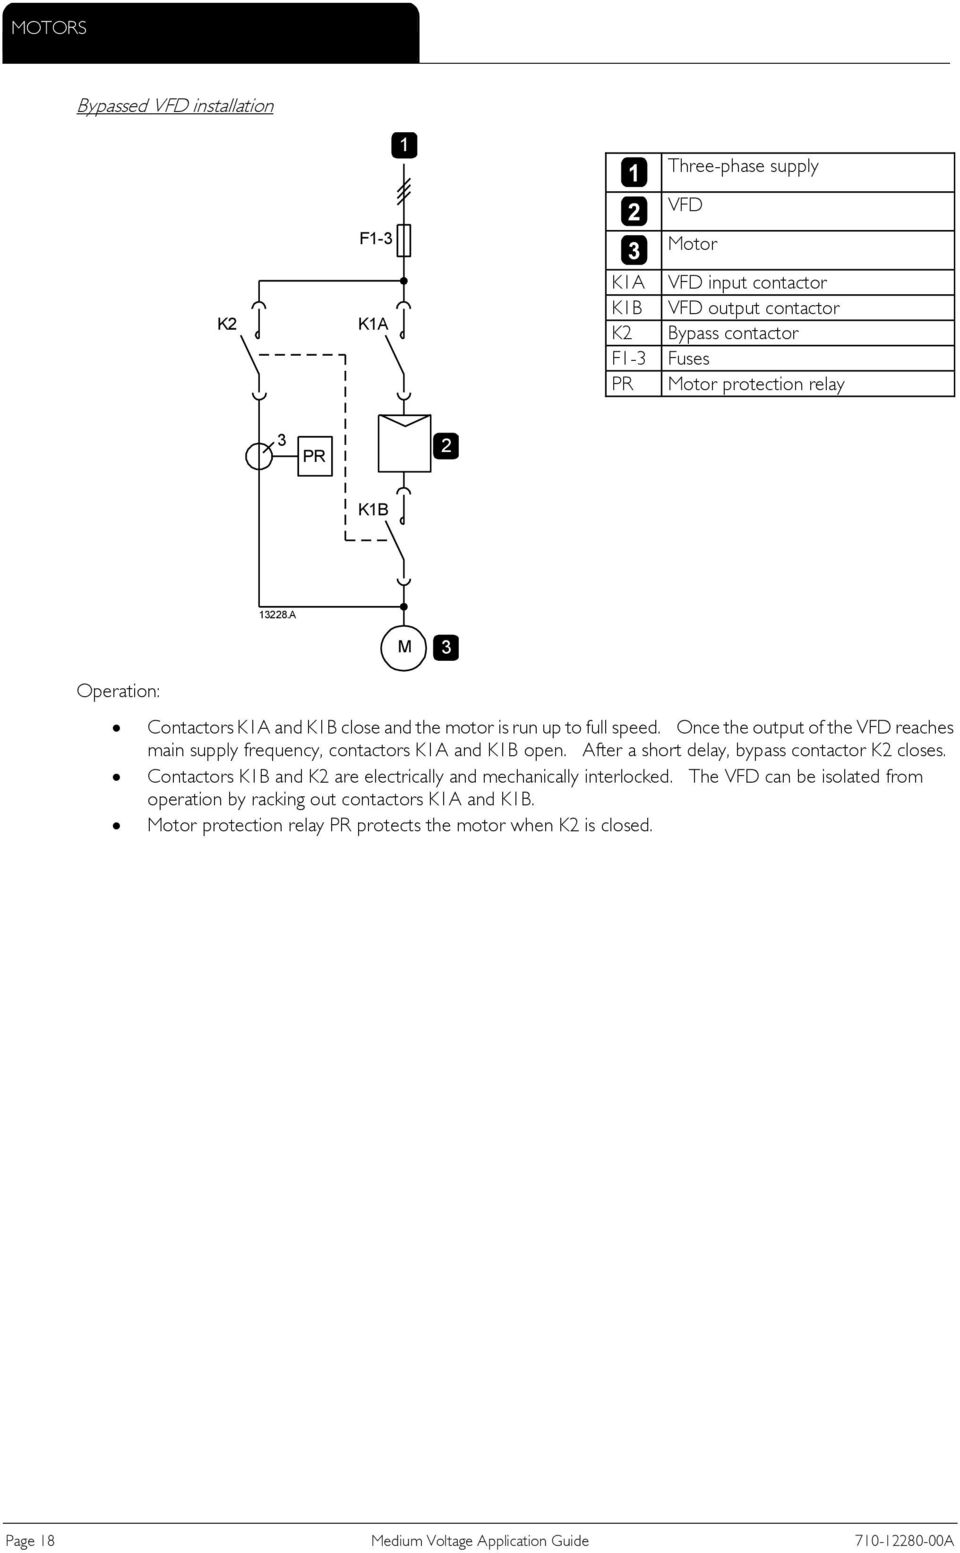 Medium Voltage Application Guide Pdf Crompton Dol Wiring Diagram Once The Output Of Vfd Reaches Main Supply Frequency Contactors K1a And K1b Open